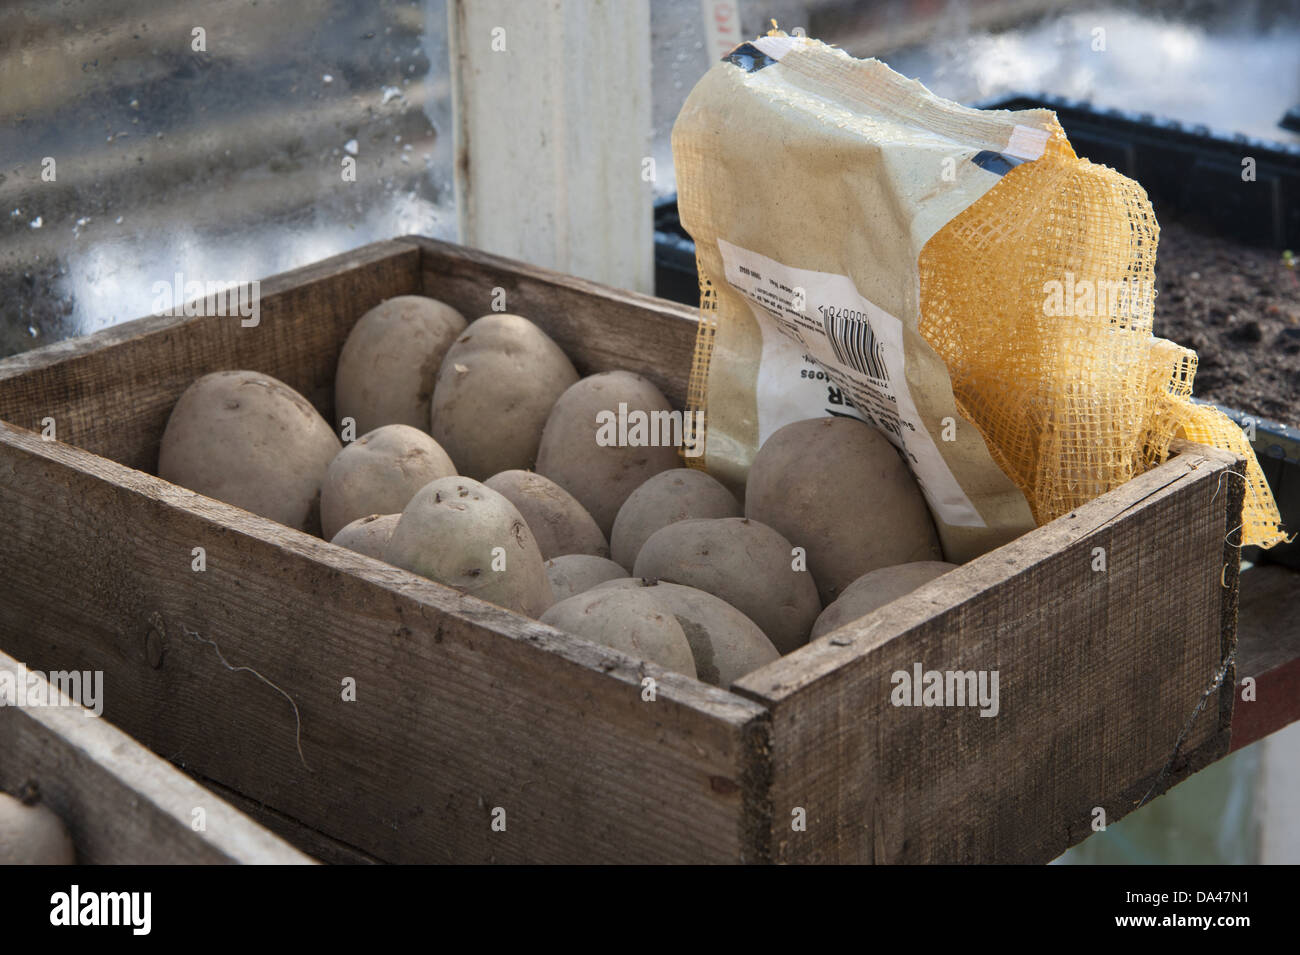 Potato (Solanum tuberosum) 'Maris Piper' variety seed tubers in wooden box in garden greenhouse Chipping - Stock Image